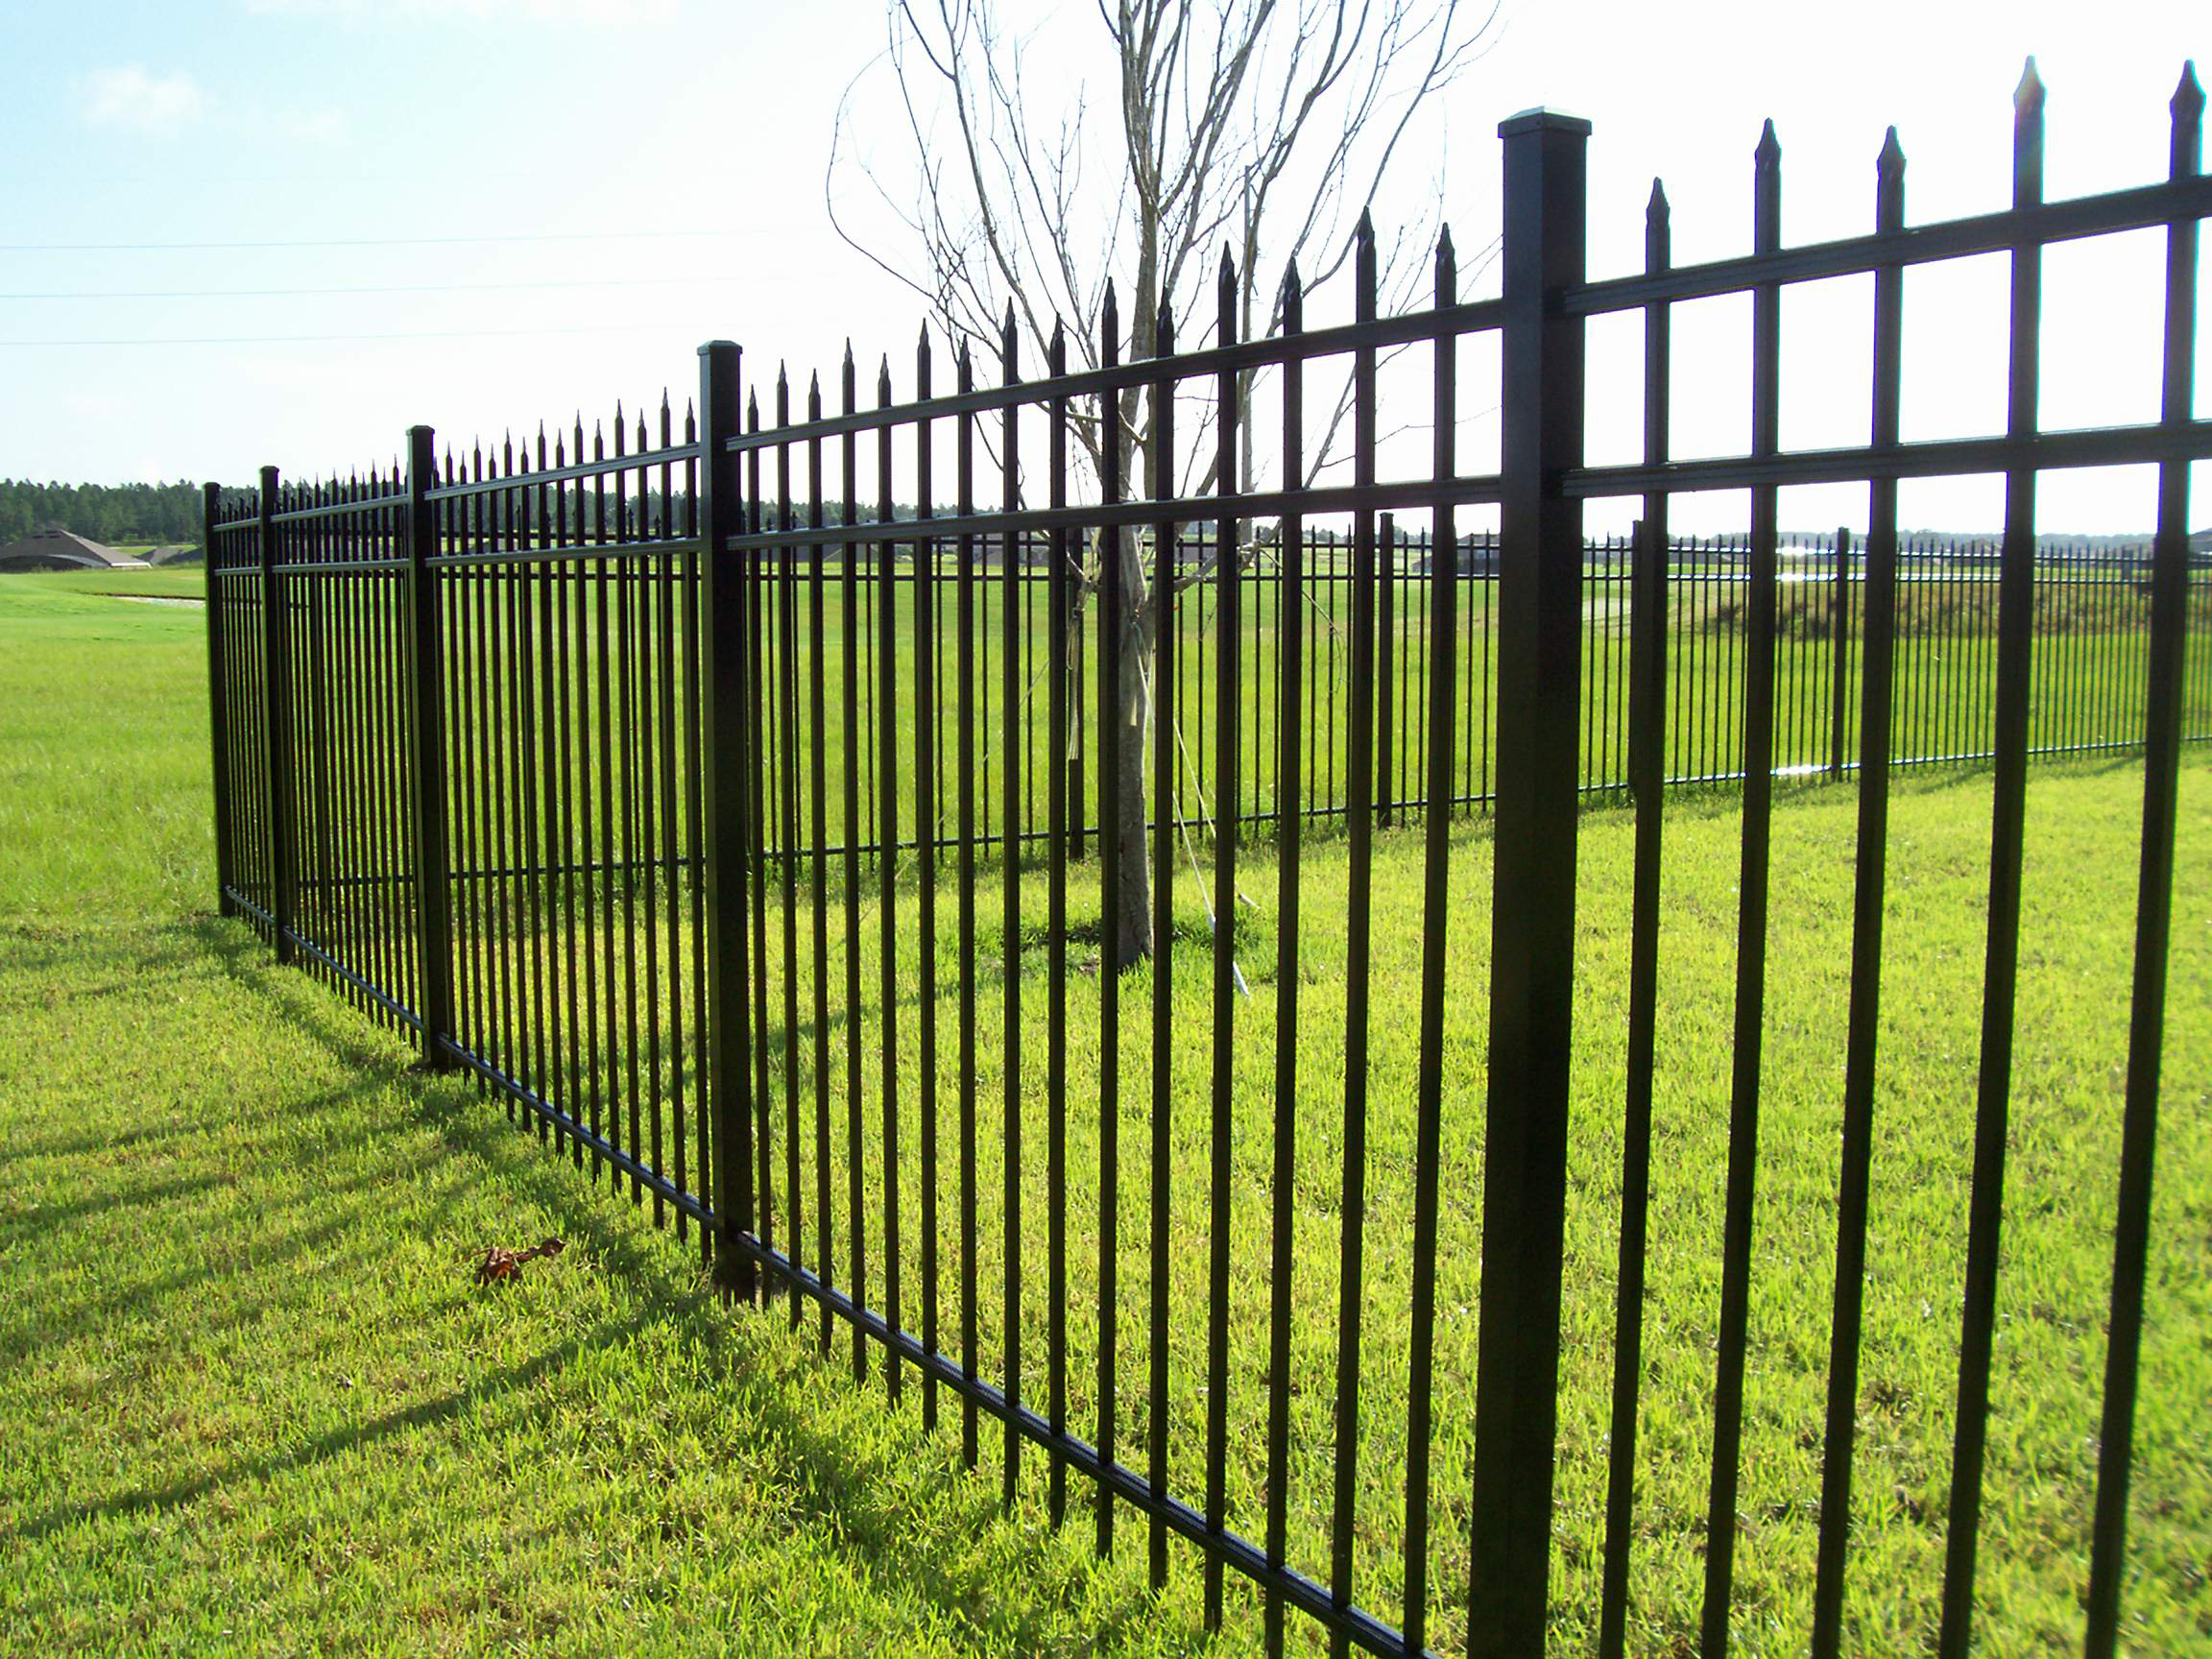 Aluminum Fencing | Fence Geeks | Wrought Iron Fences, Gates, and ...